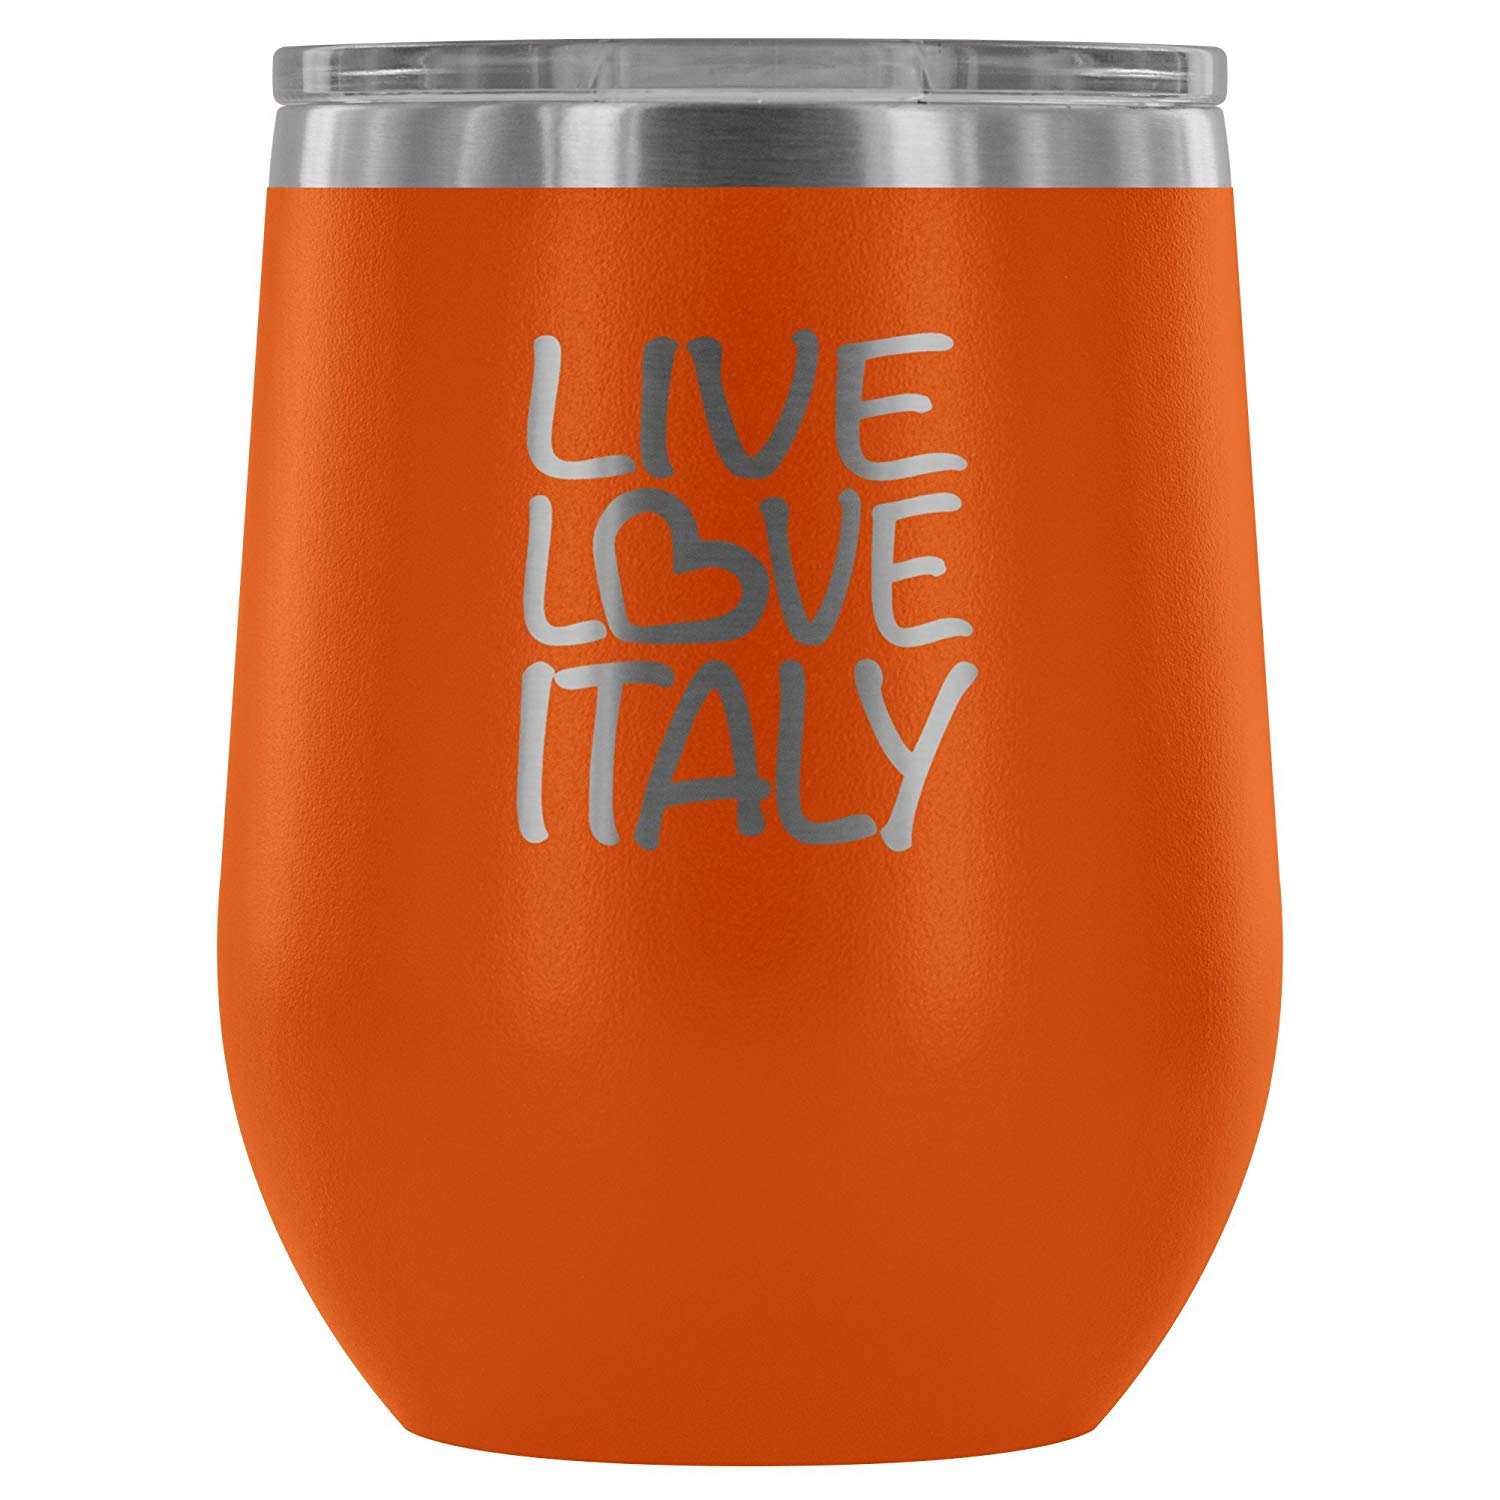 39c776780c2 Insulated Wine Tumbler with Lid – Live Love Italy - 12 oz Stemless  Stainless Steel Wine Glass – Double Wall Vacuum Insulated Travel Cup for  Wine, Coffee, ...